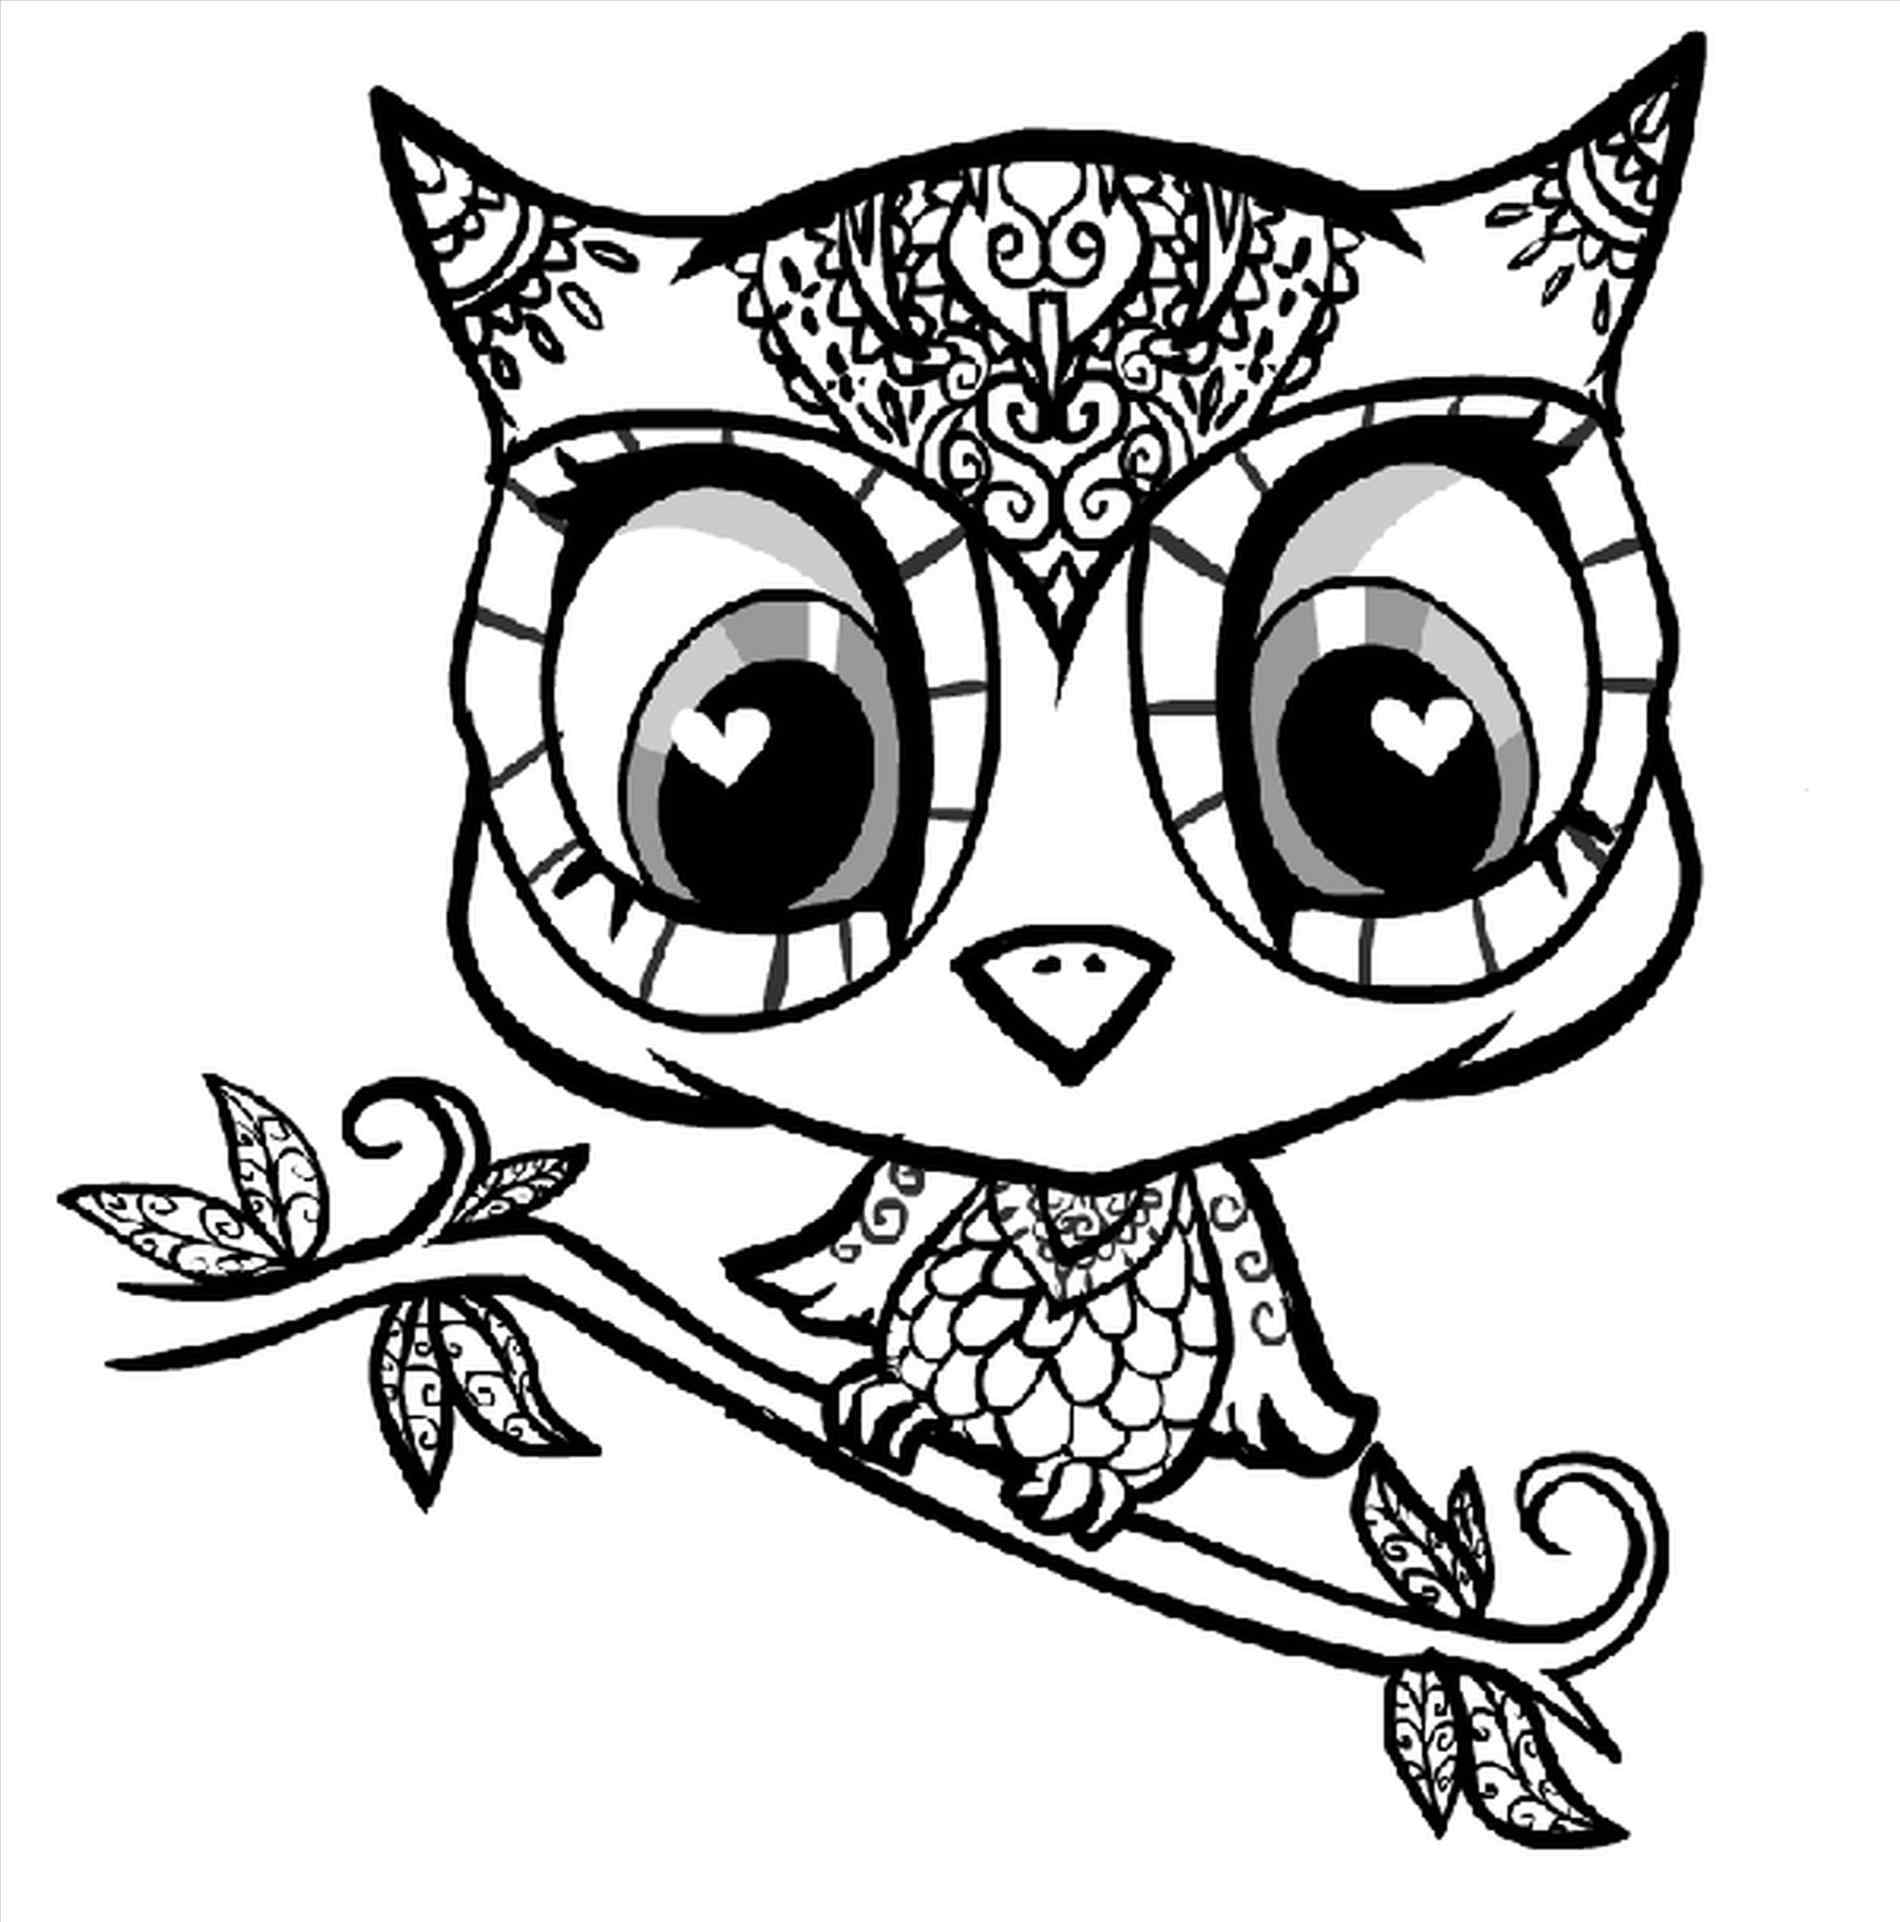 1900x1922 Cute Cartoon Animals With Big Eyes Coloring Pages Online